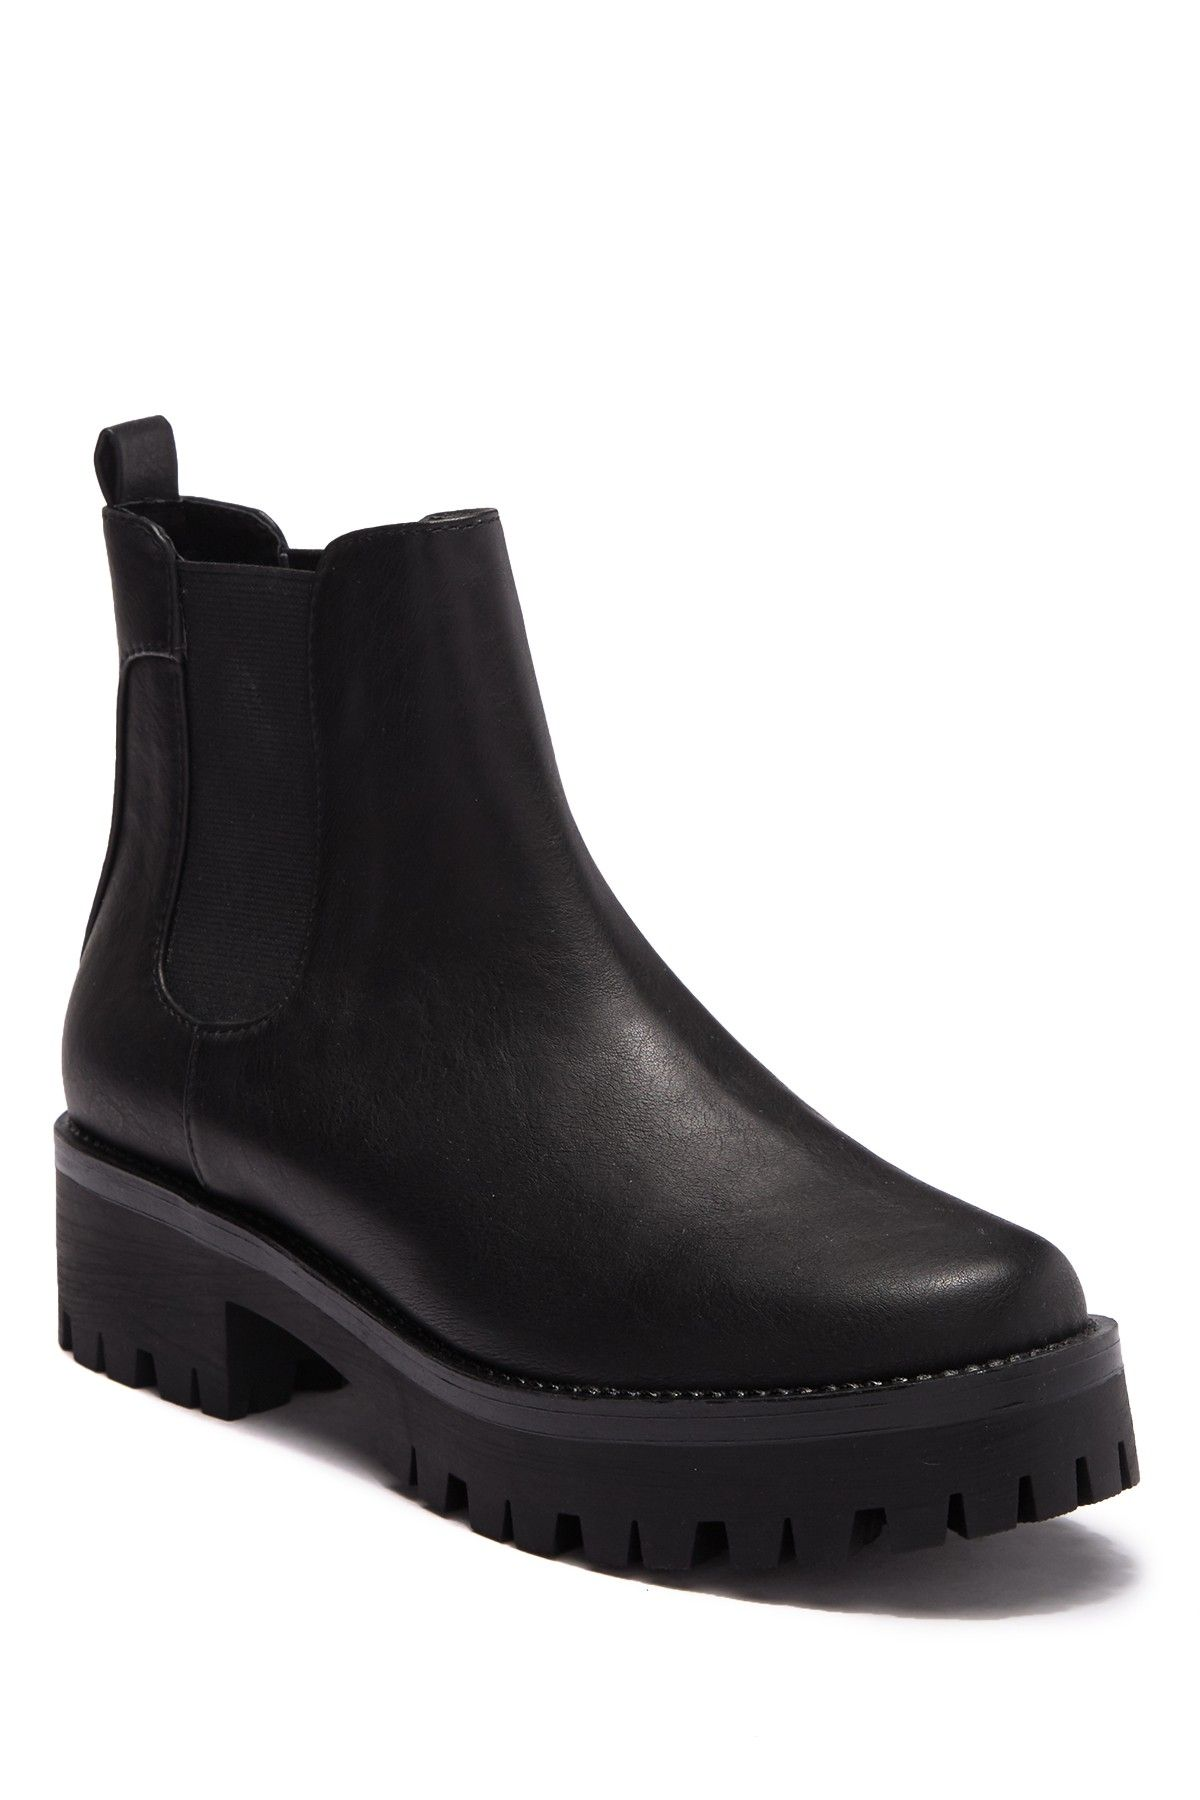 1a76770d3 Steve Madden - Harrison Platform Chelsea Boot is now 40% off. Free Shipping  on orders over  100.